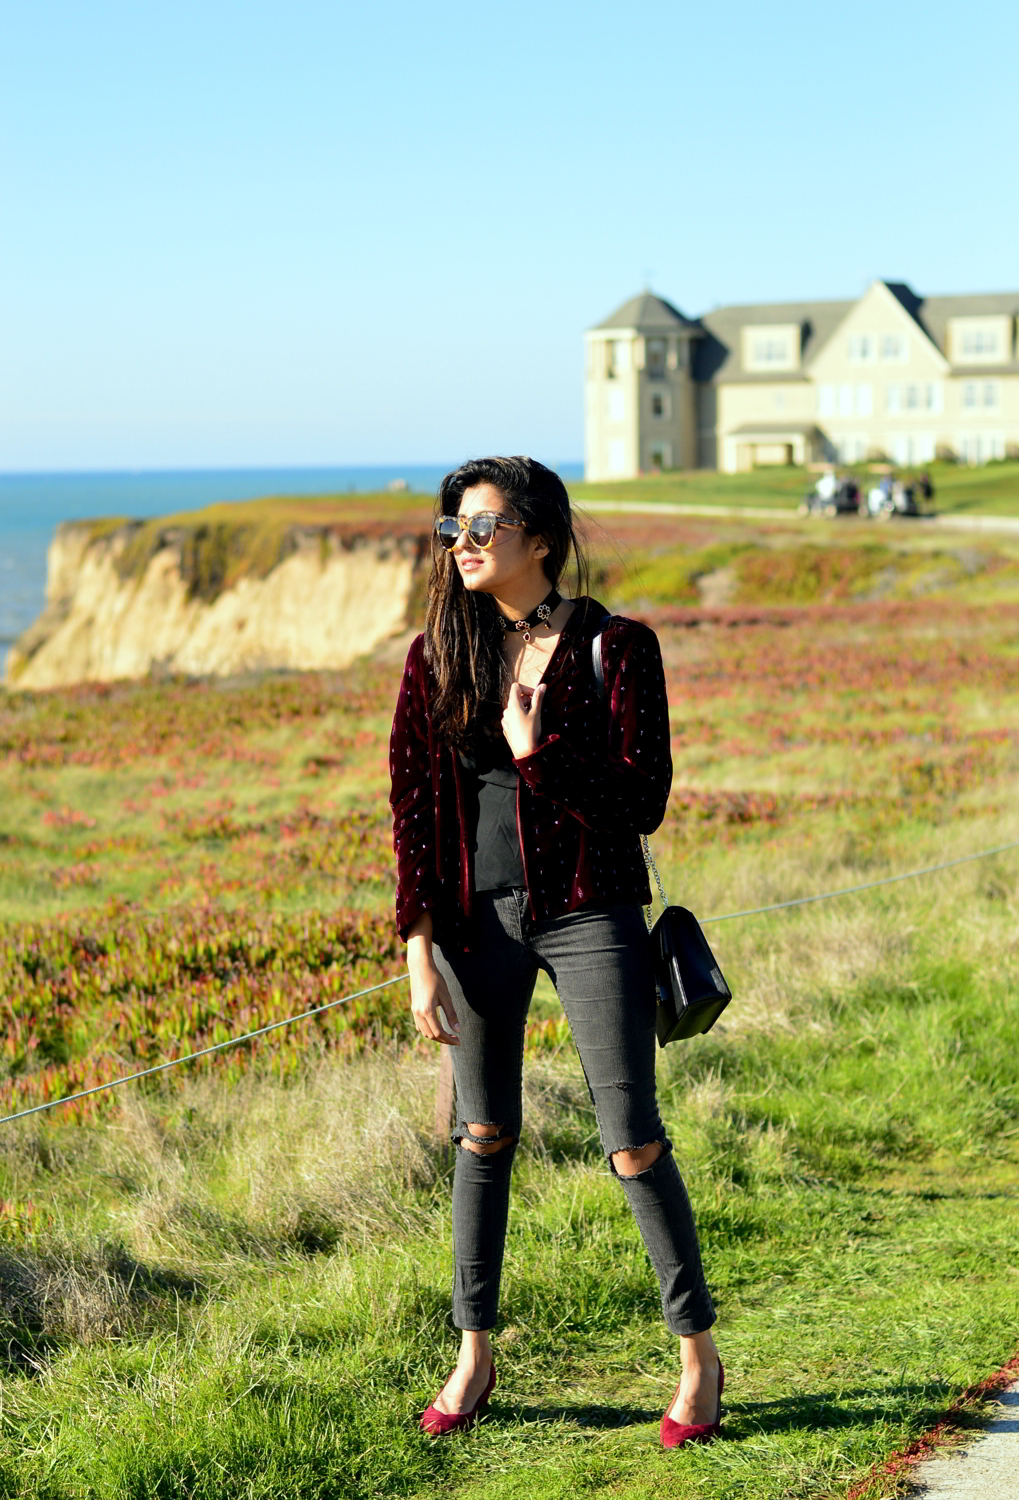 velvet-embellished-blazer-holiday-party-style-half-moon-bay-blogger-outfit